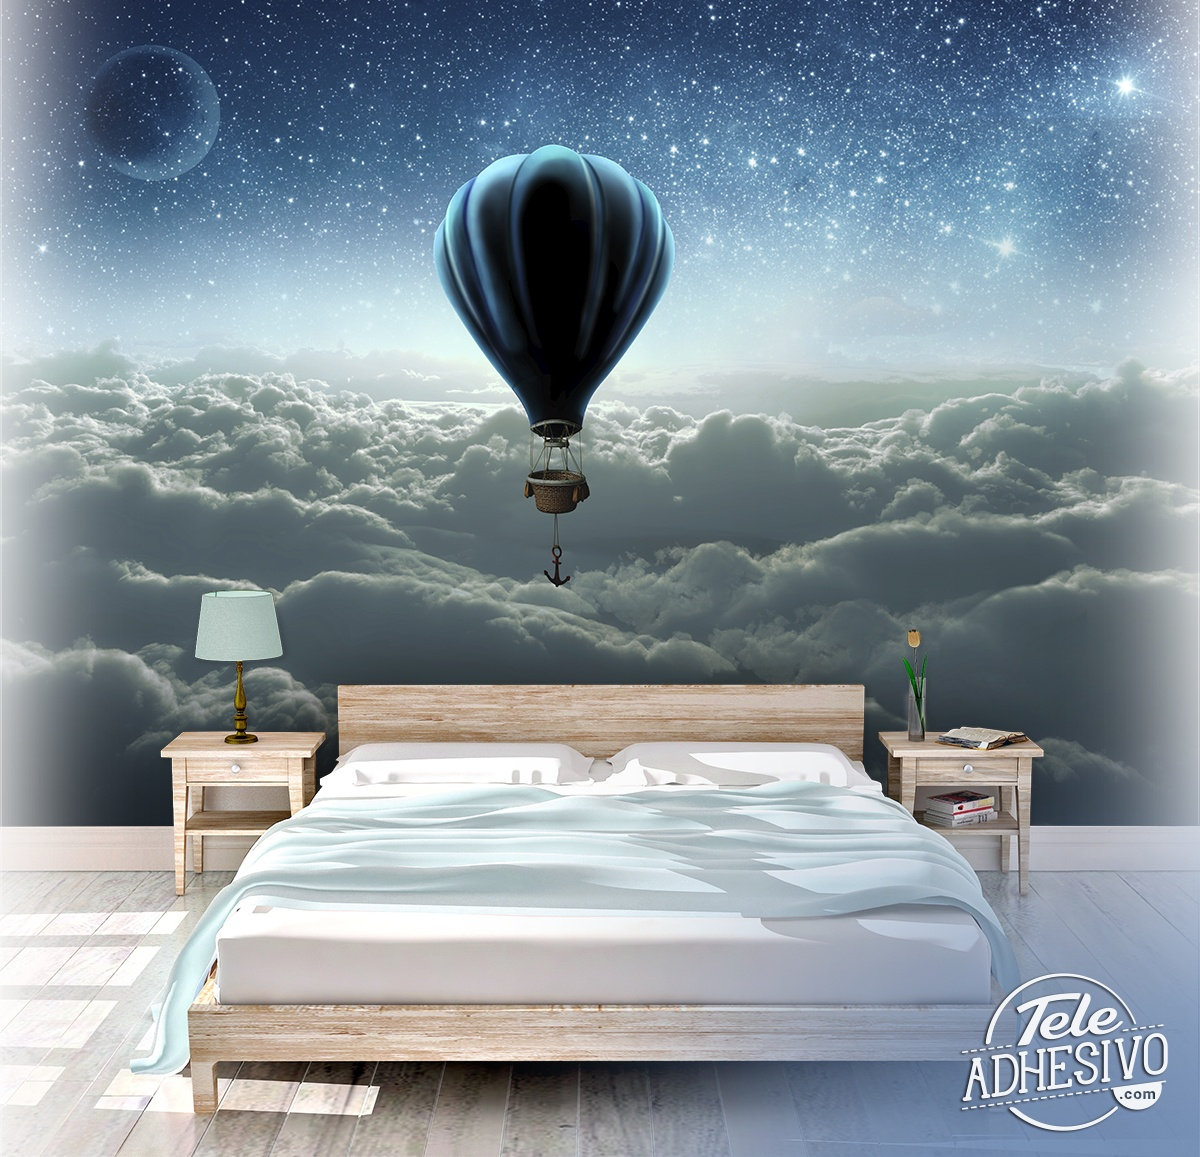 Wall Murals: Sunrise hot air balloon